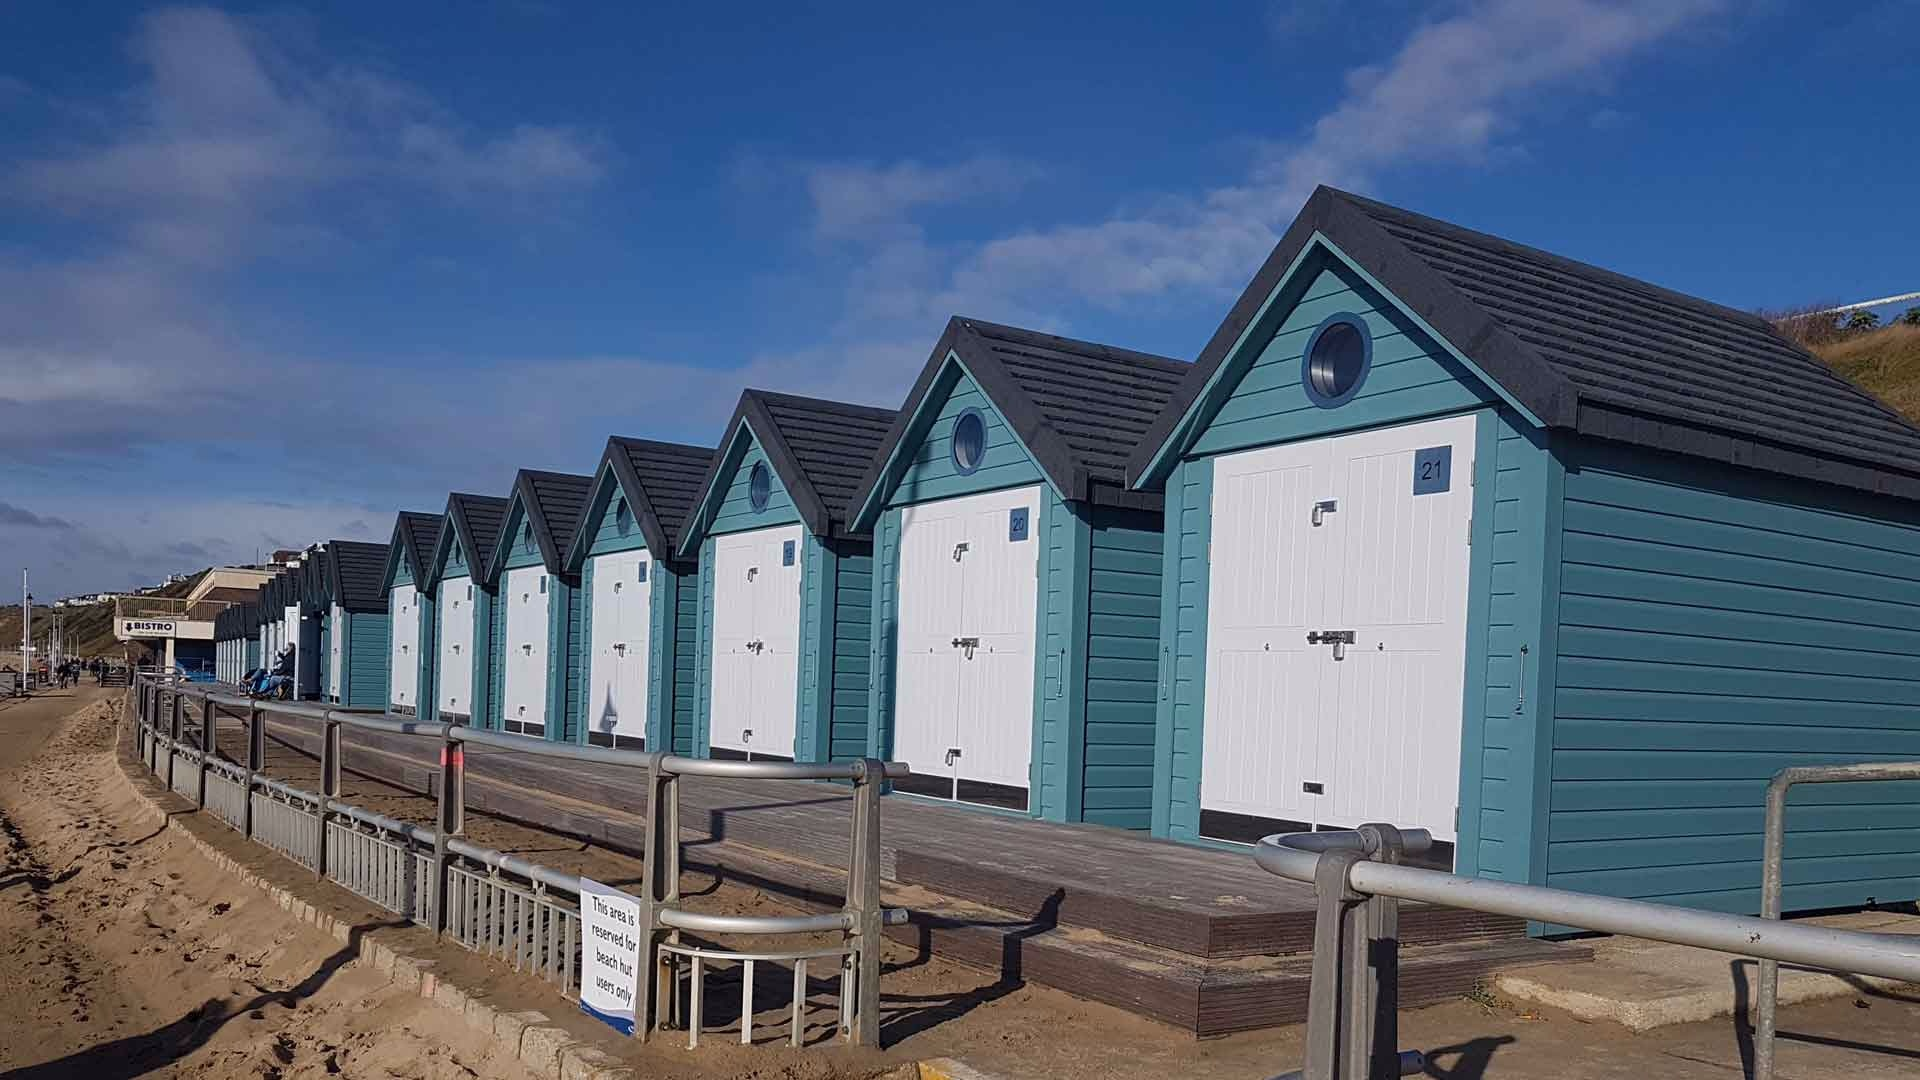 <b>superhuts-southbourne.jpg</b> <br/> Superhuts at Southbourne on Sea